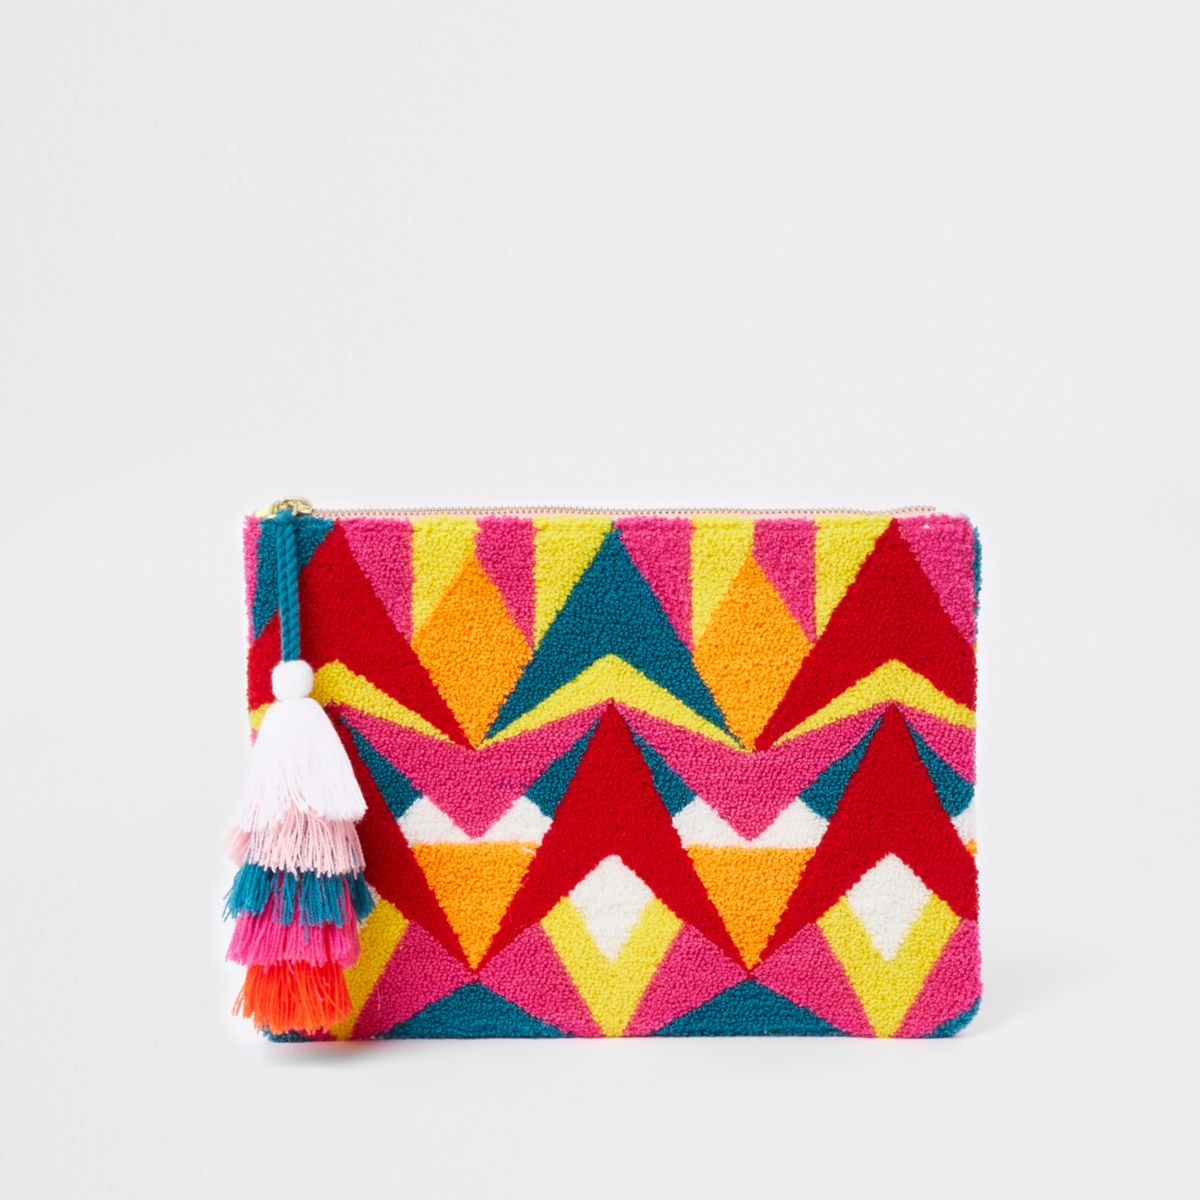 VIDA Statement Clutch - Sherry by VIDA